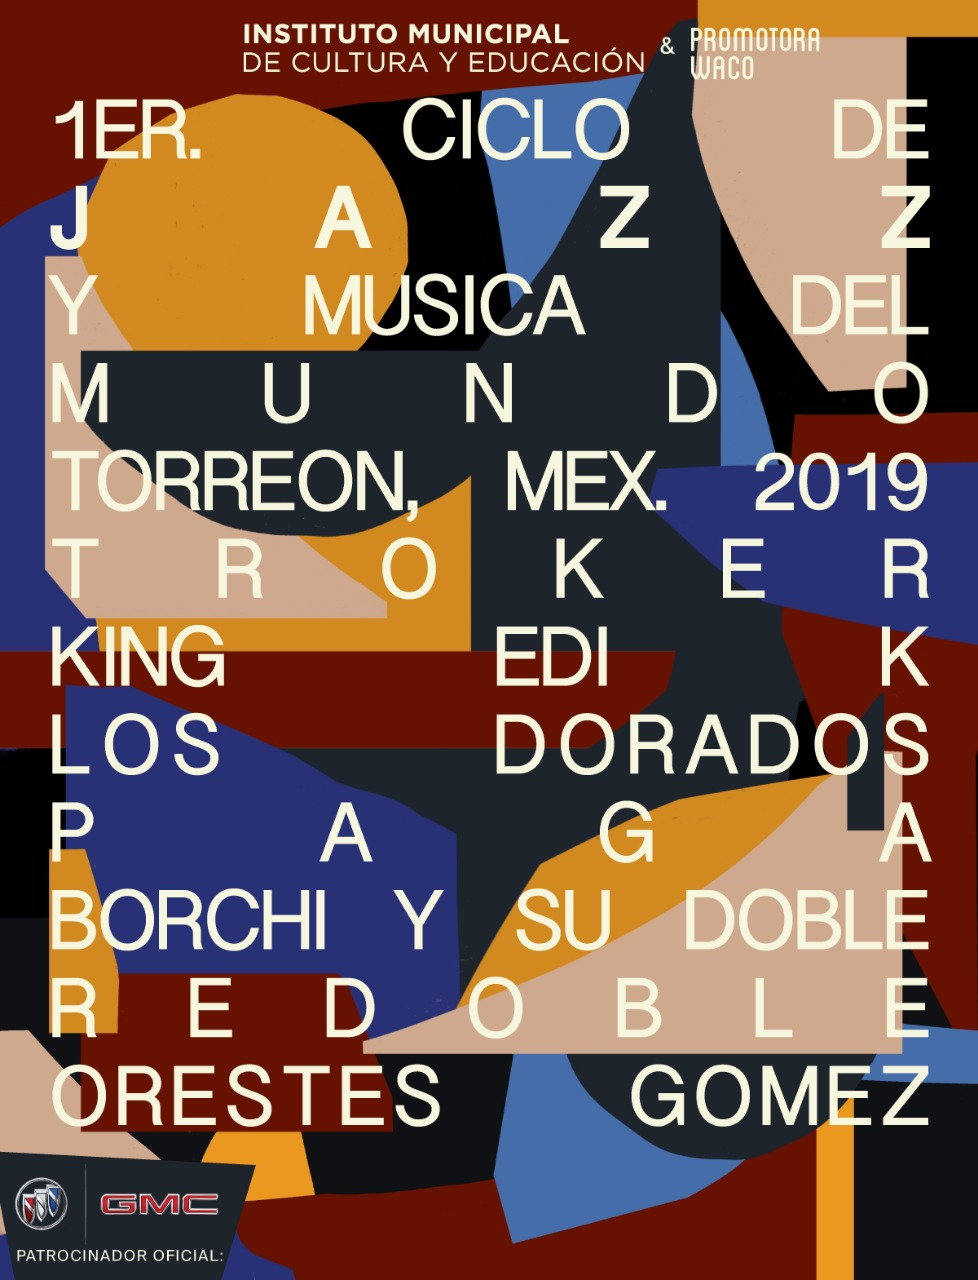 1er Ciclo de Jazz: Set of posters